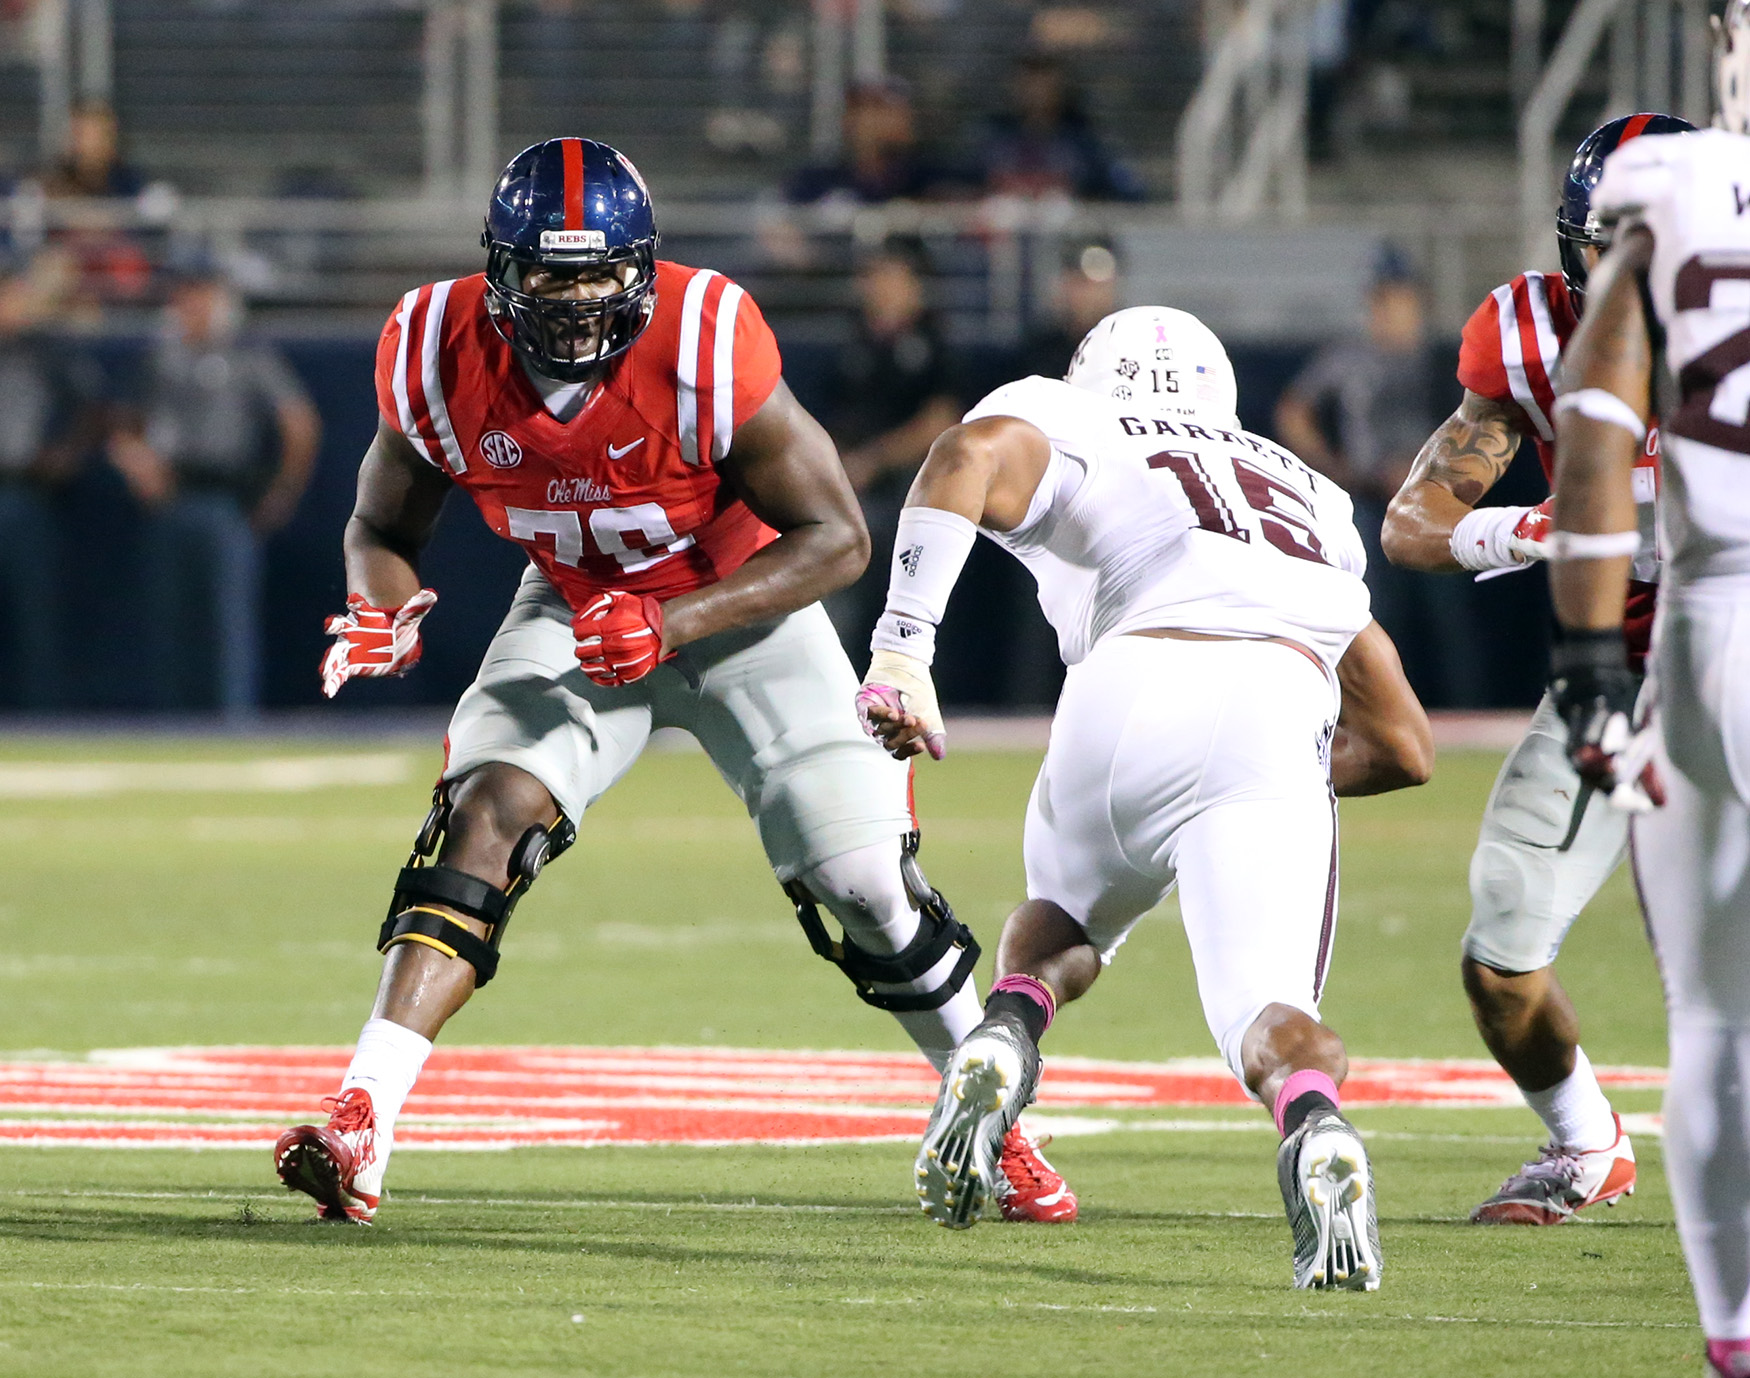 Ole Miss Football defeated Texas A&M 23-3 on October 24th, 2015 in Oxford, MS. Photo by Joshua McCoy/Ole Miss Athletics